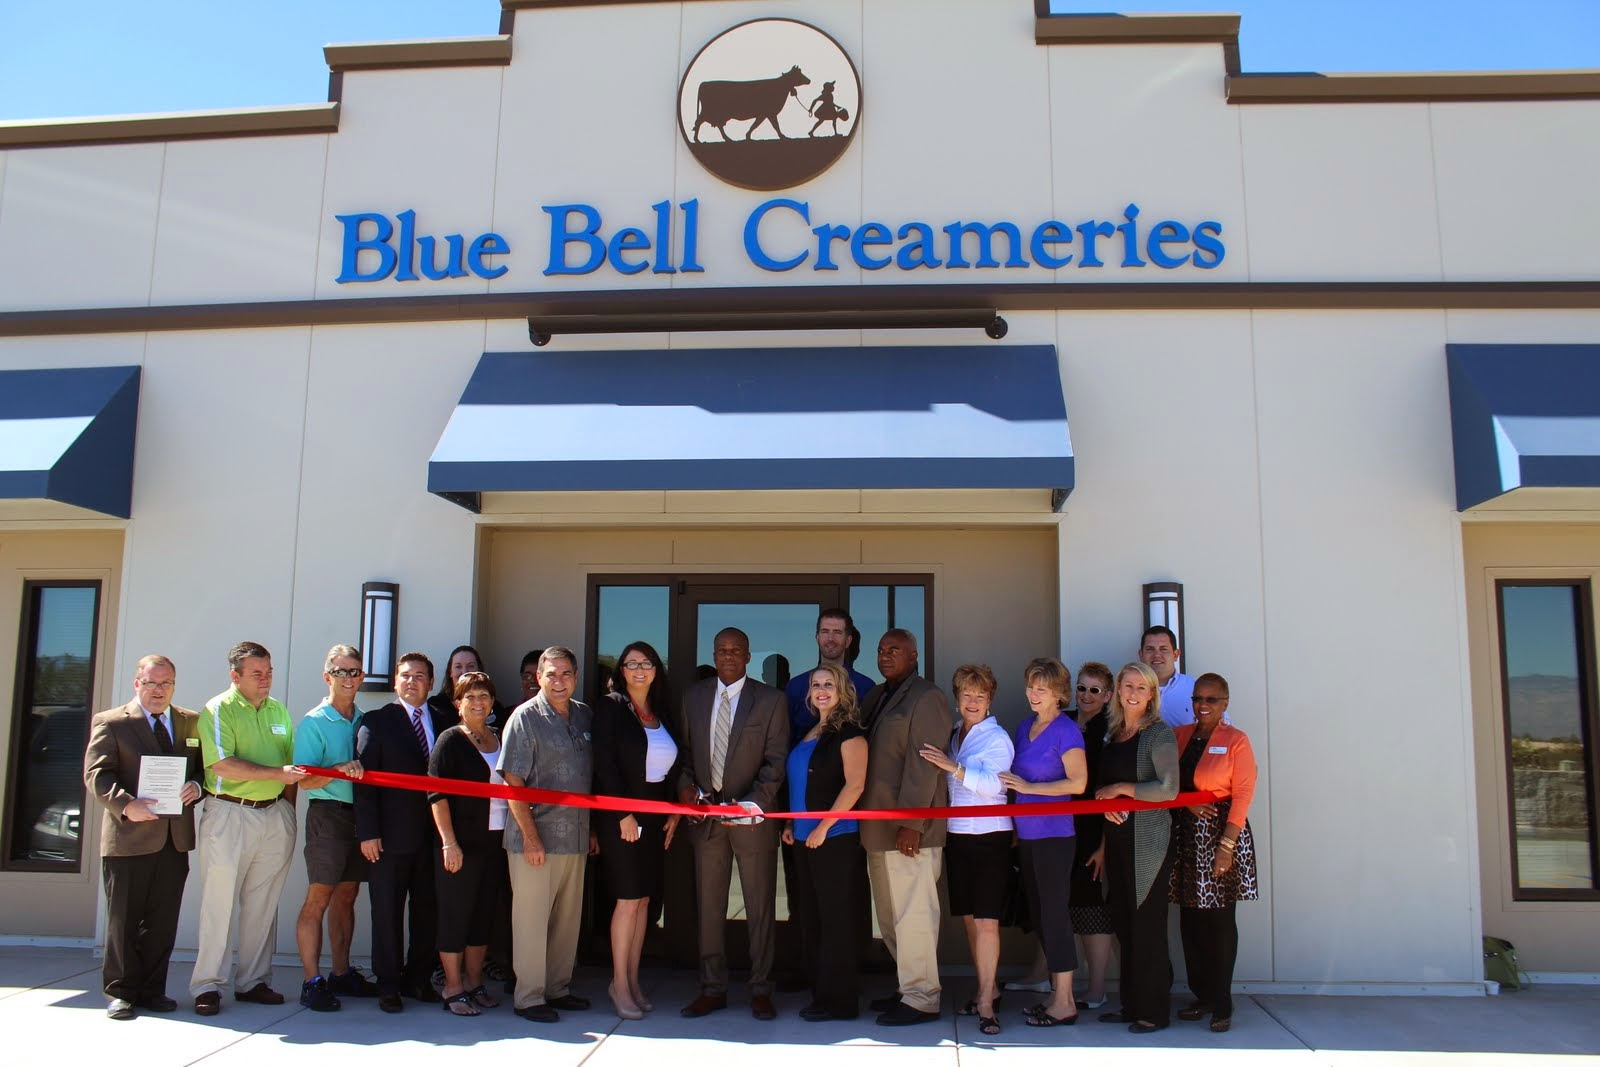 Blue Bell Creameries (Tucson) grand opening of new distribution facility.